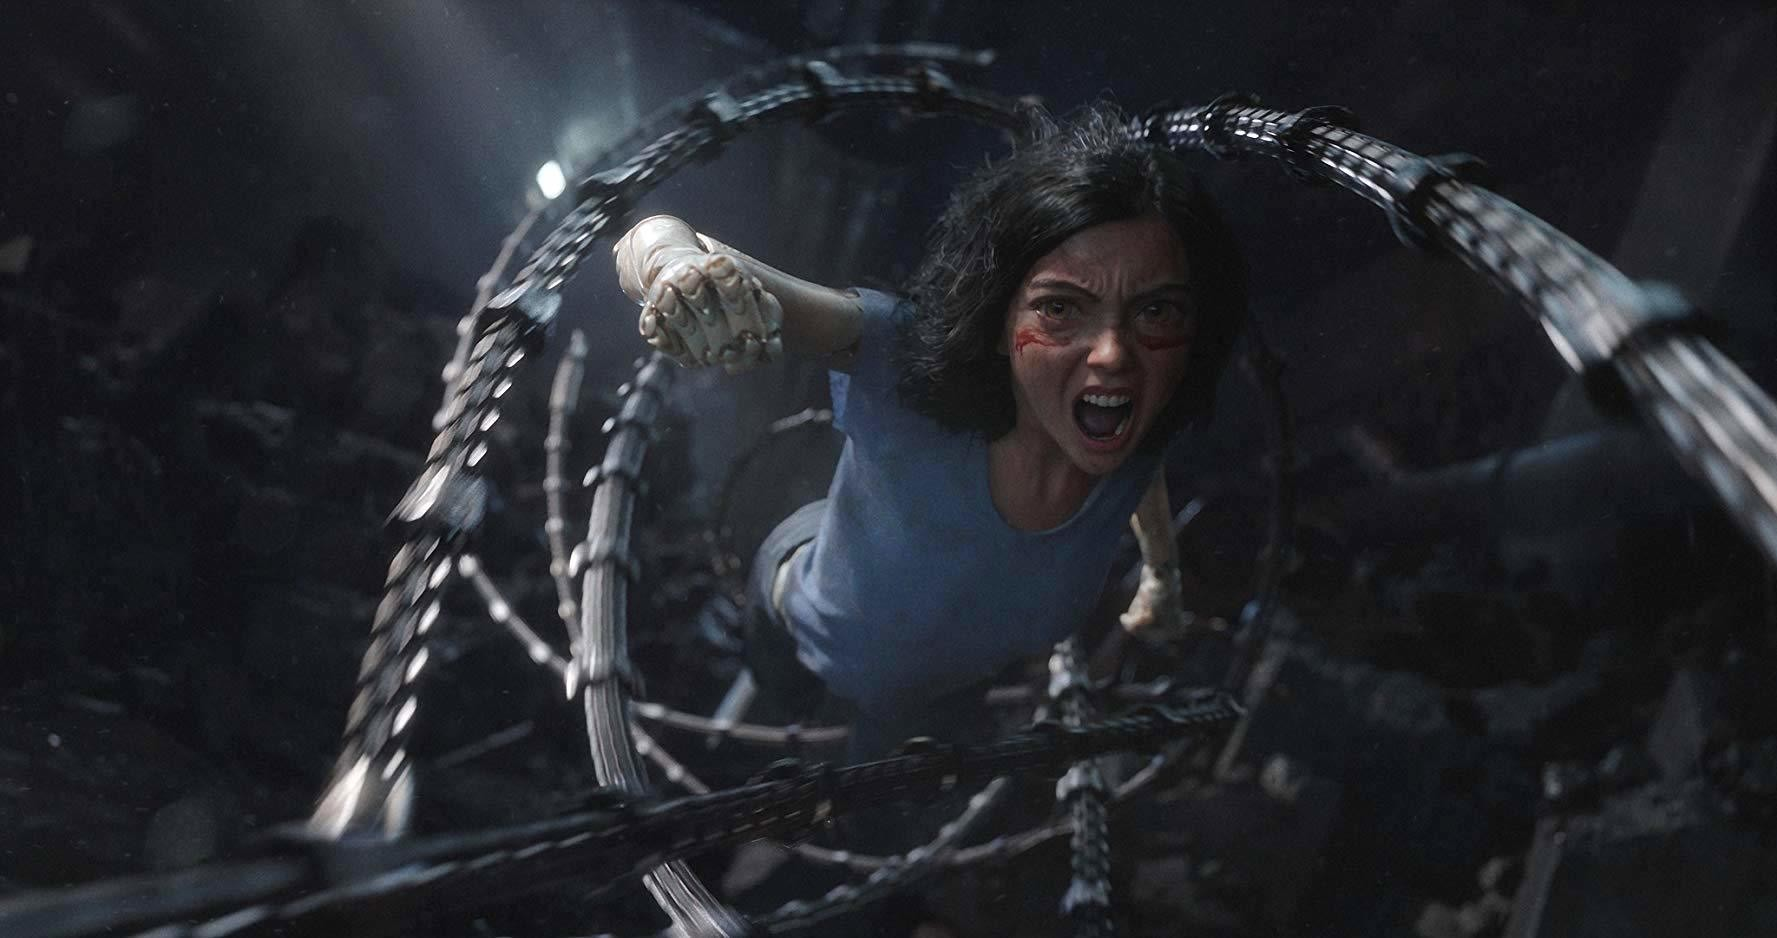 Cyborg Love, Motorball, And More Reasons Why 'Alita: Battle Angel' Is Weird